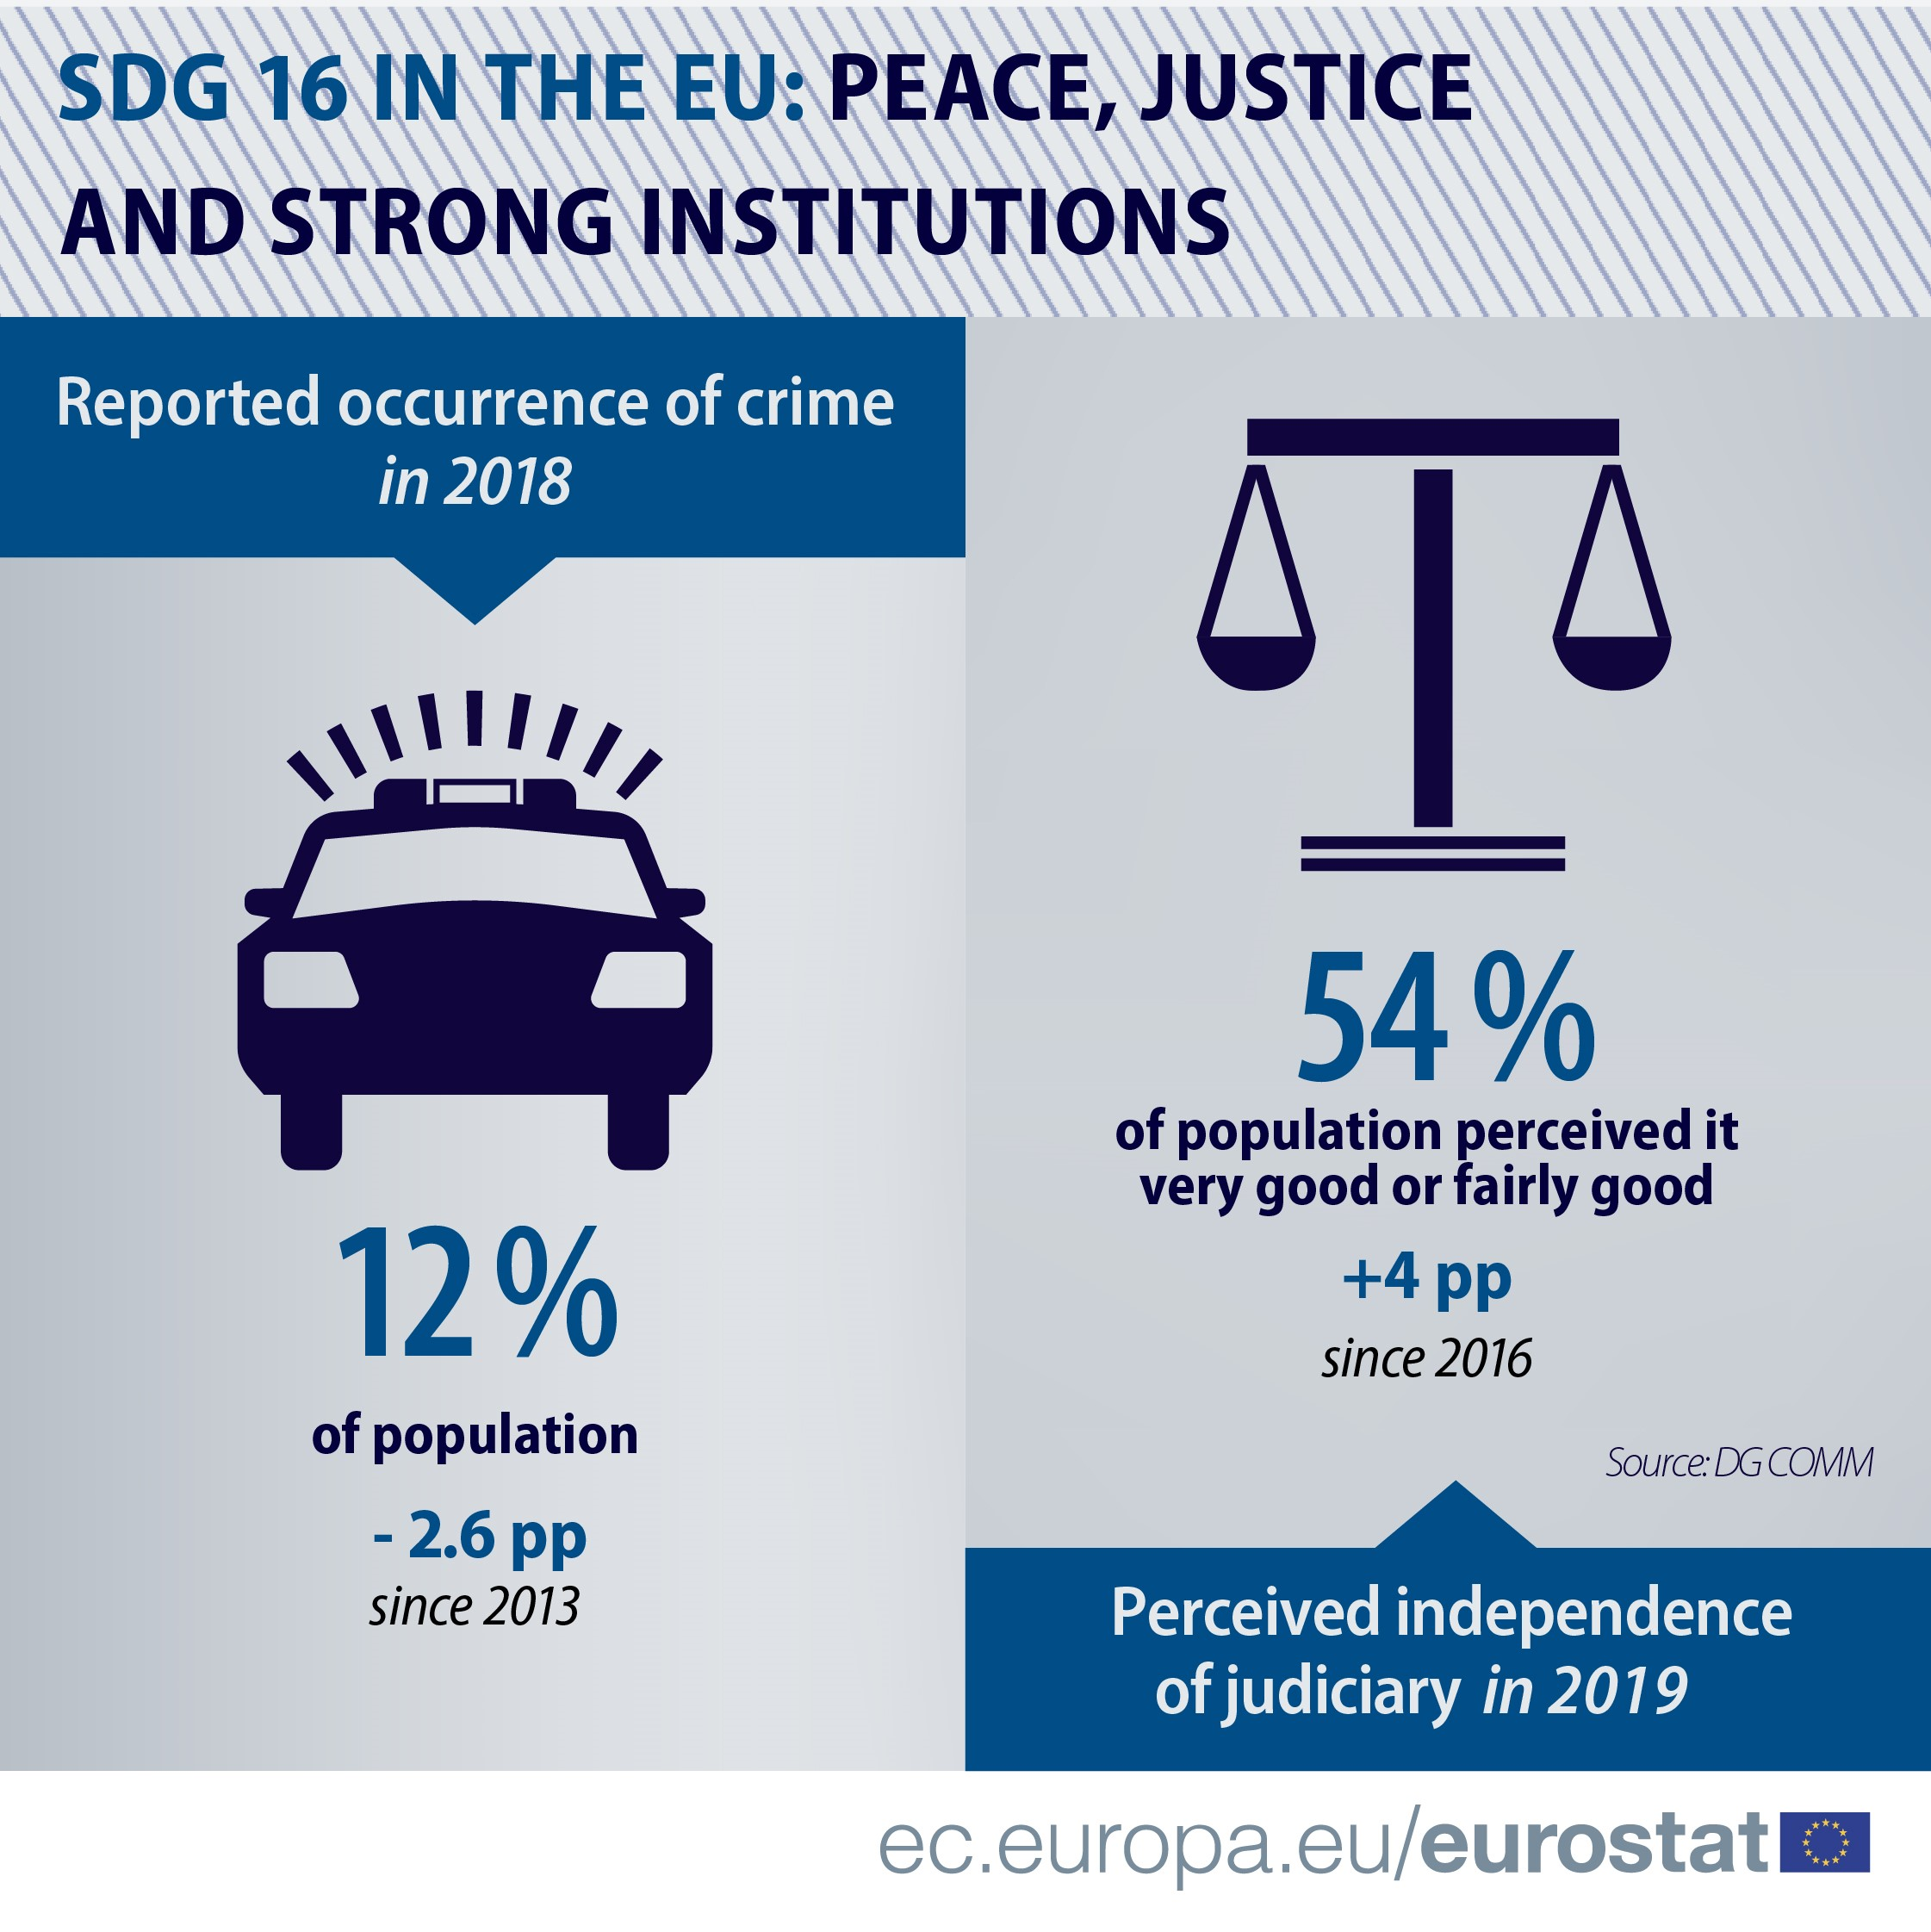 SDG 16 IN THE EU: Peace, justice and strong institution